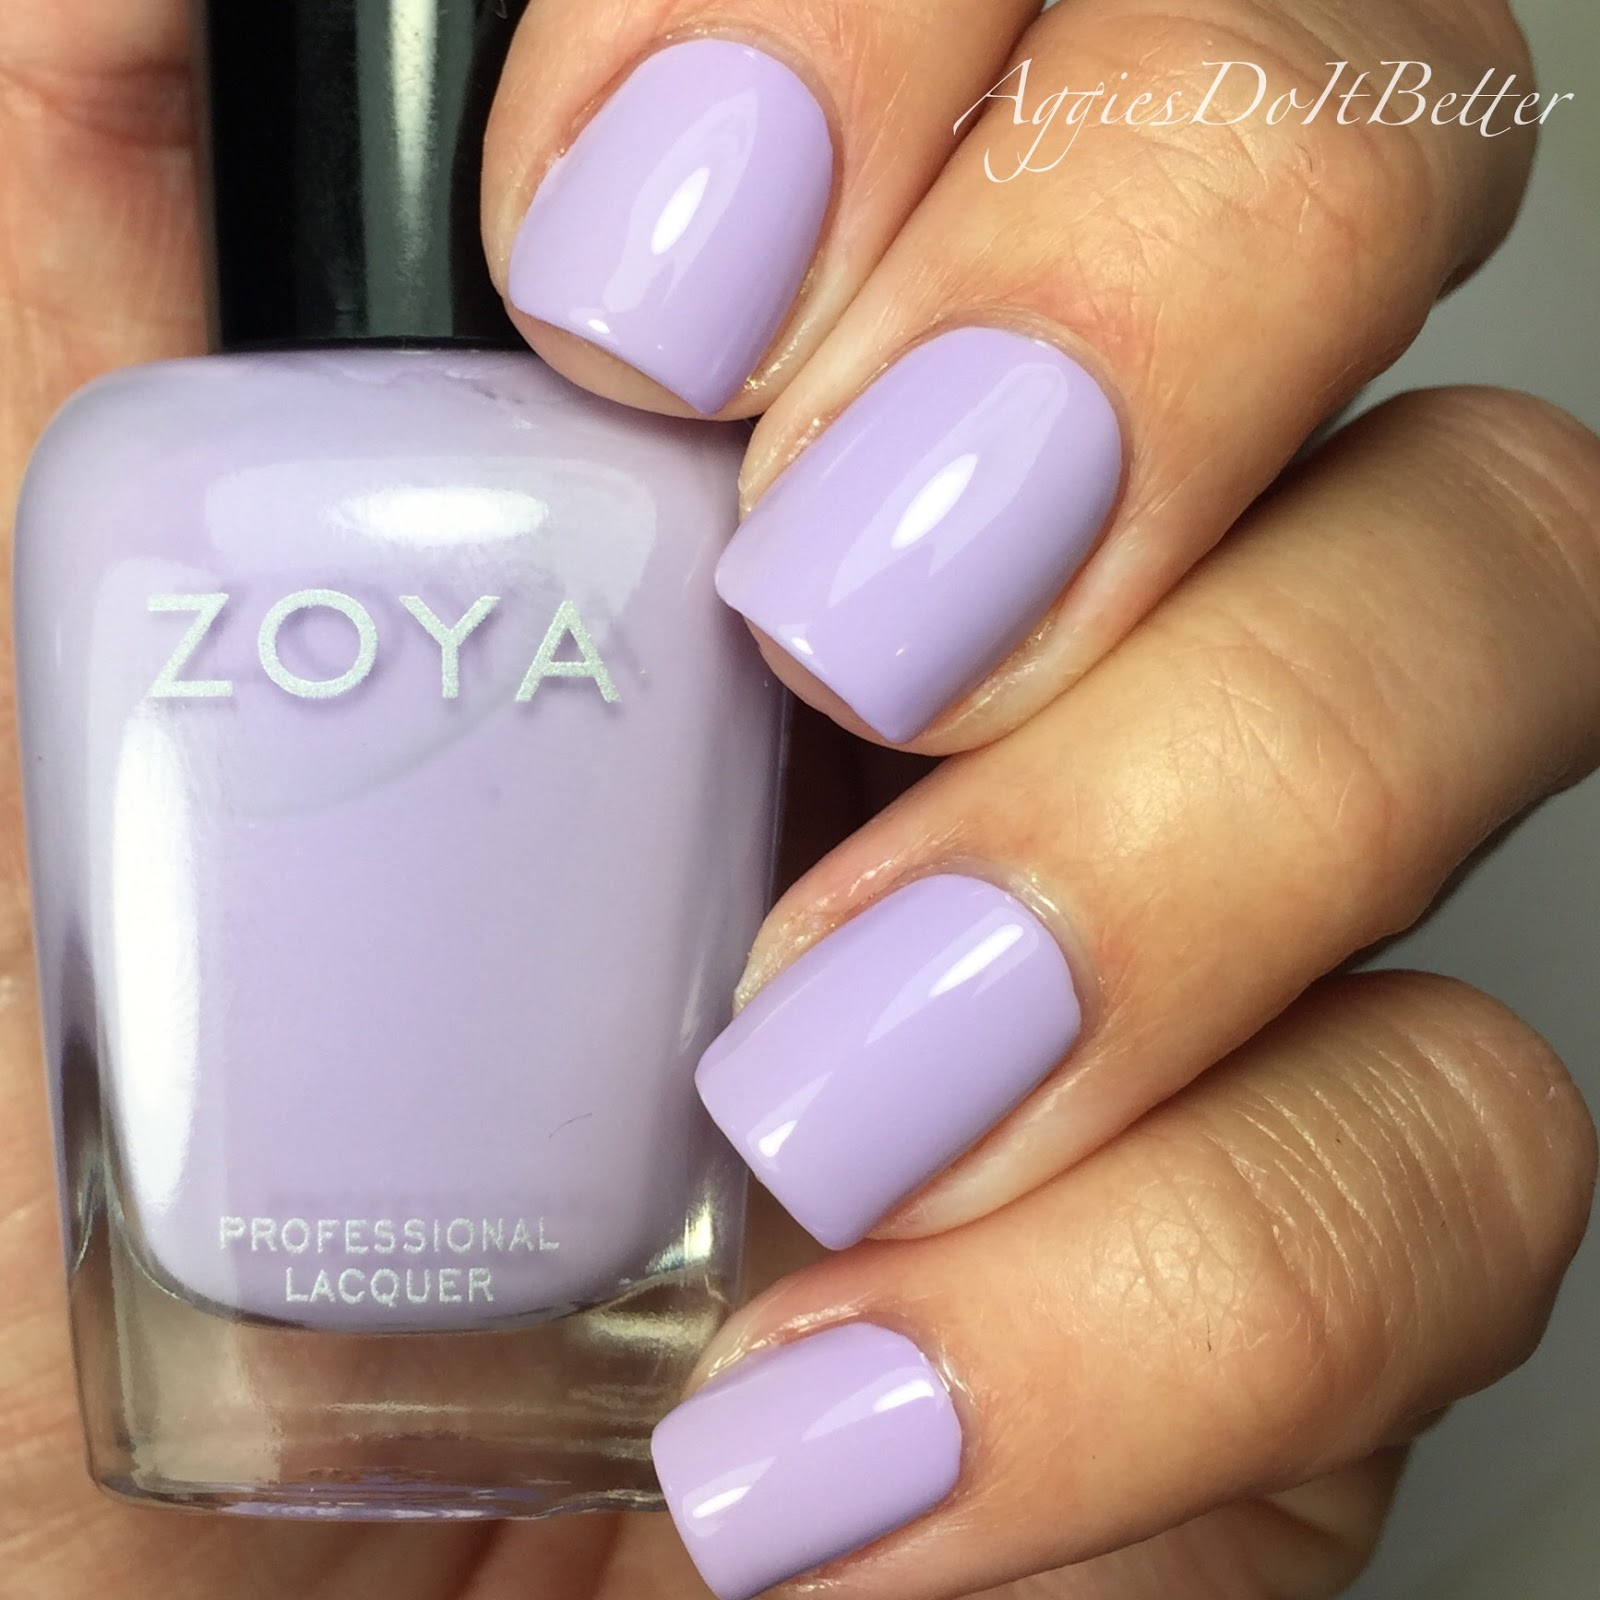 Aggies Do It Better Zoya Charming Collection For Spring 2017